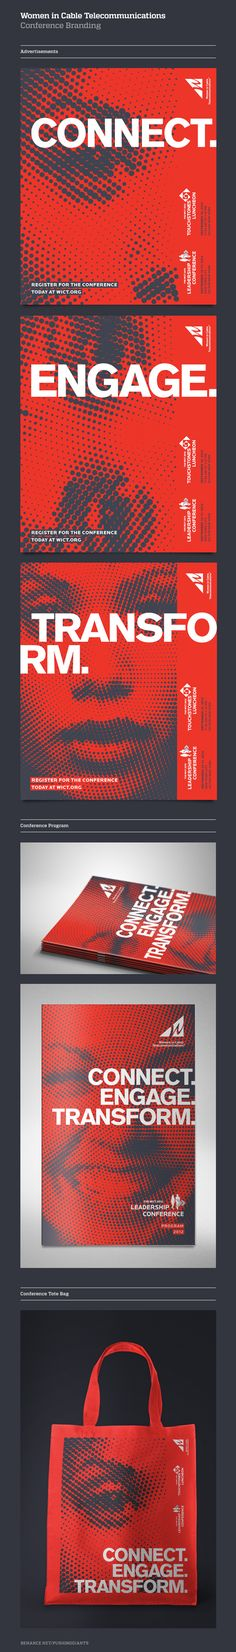 Conference Branding. Design: Greg Spraker / ©Fuszion